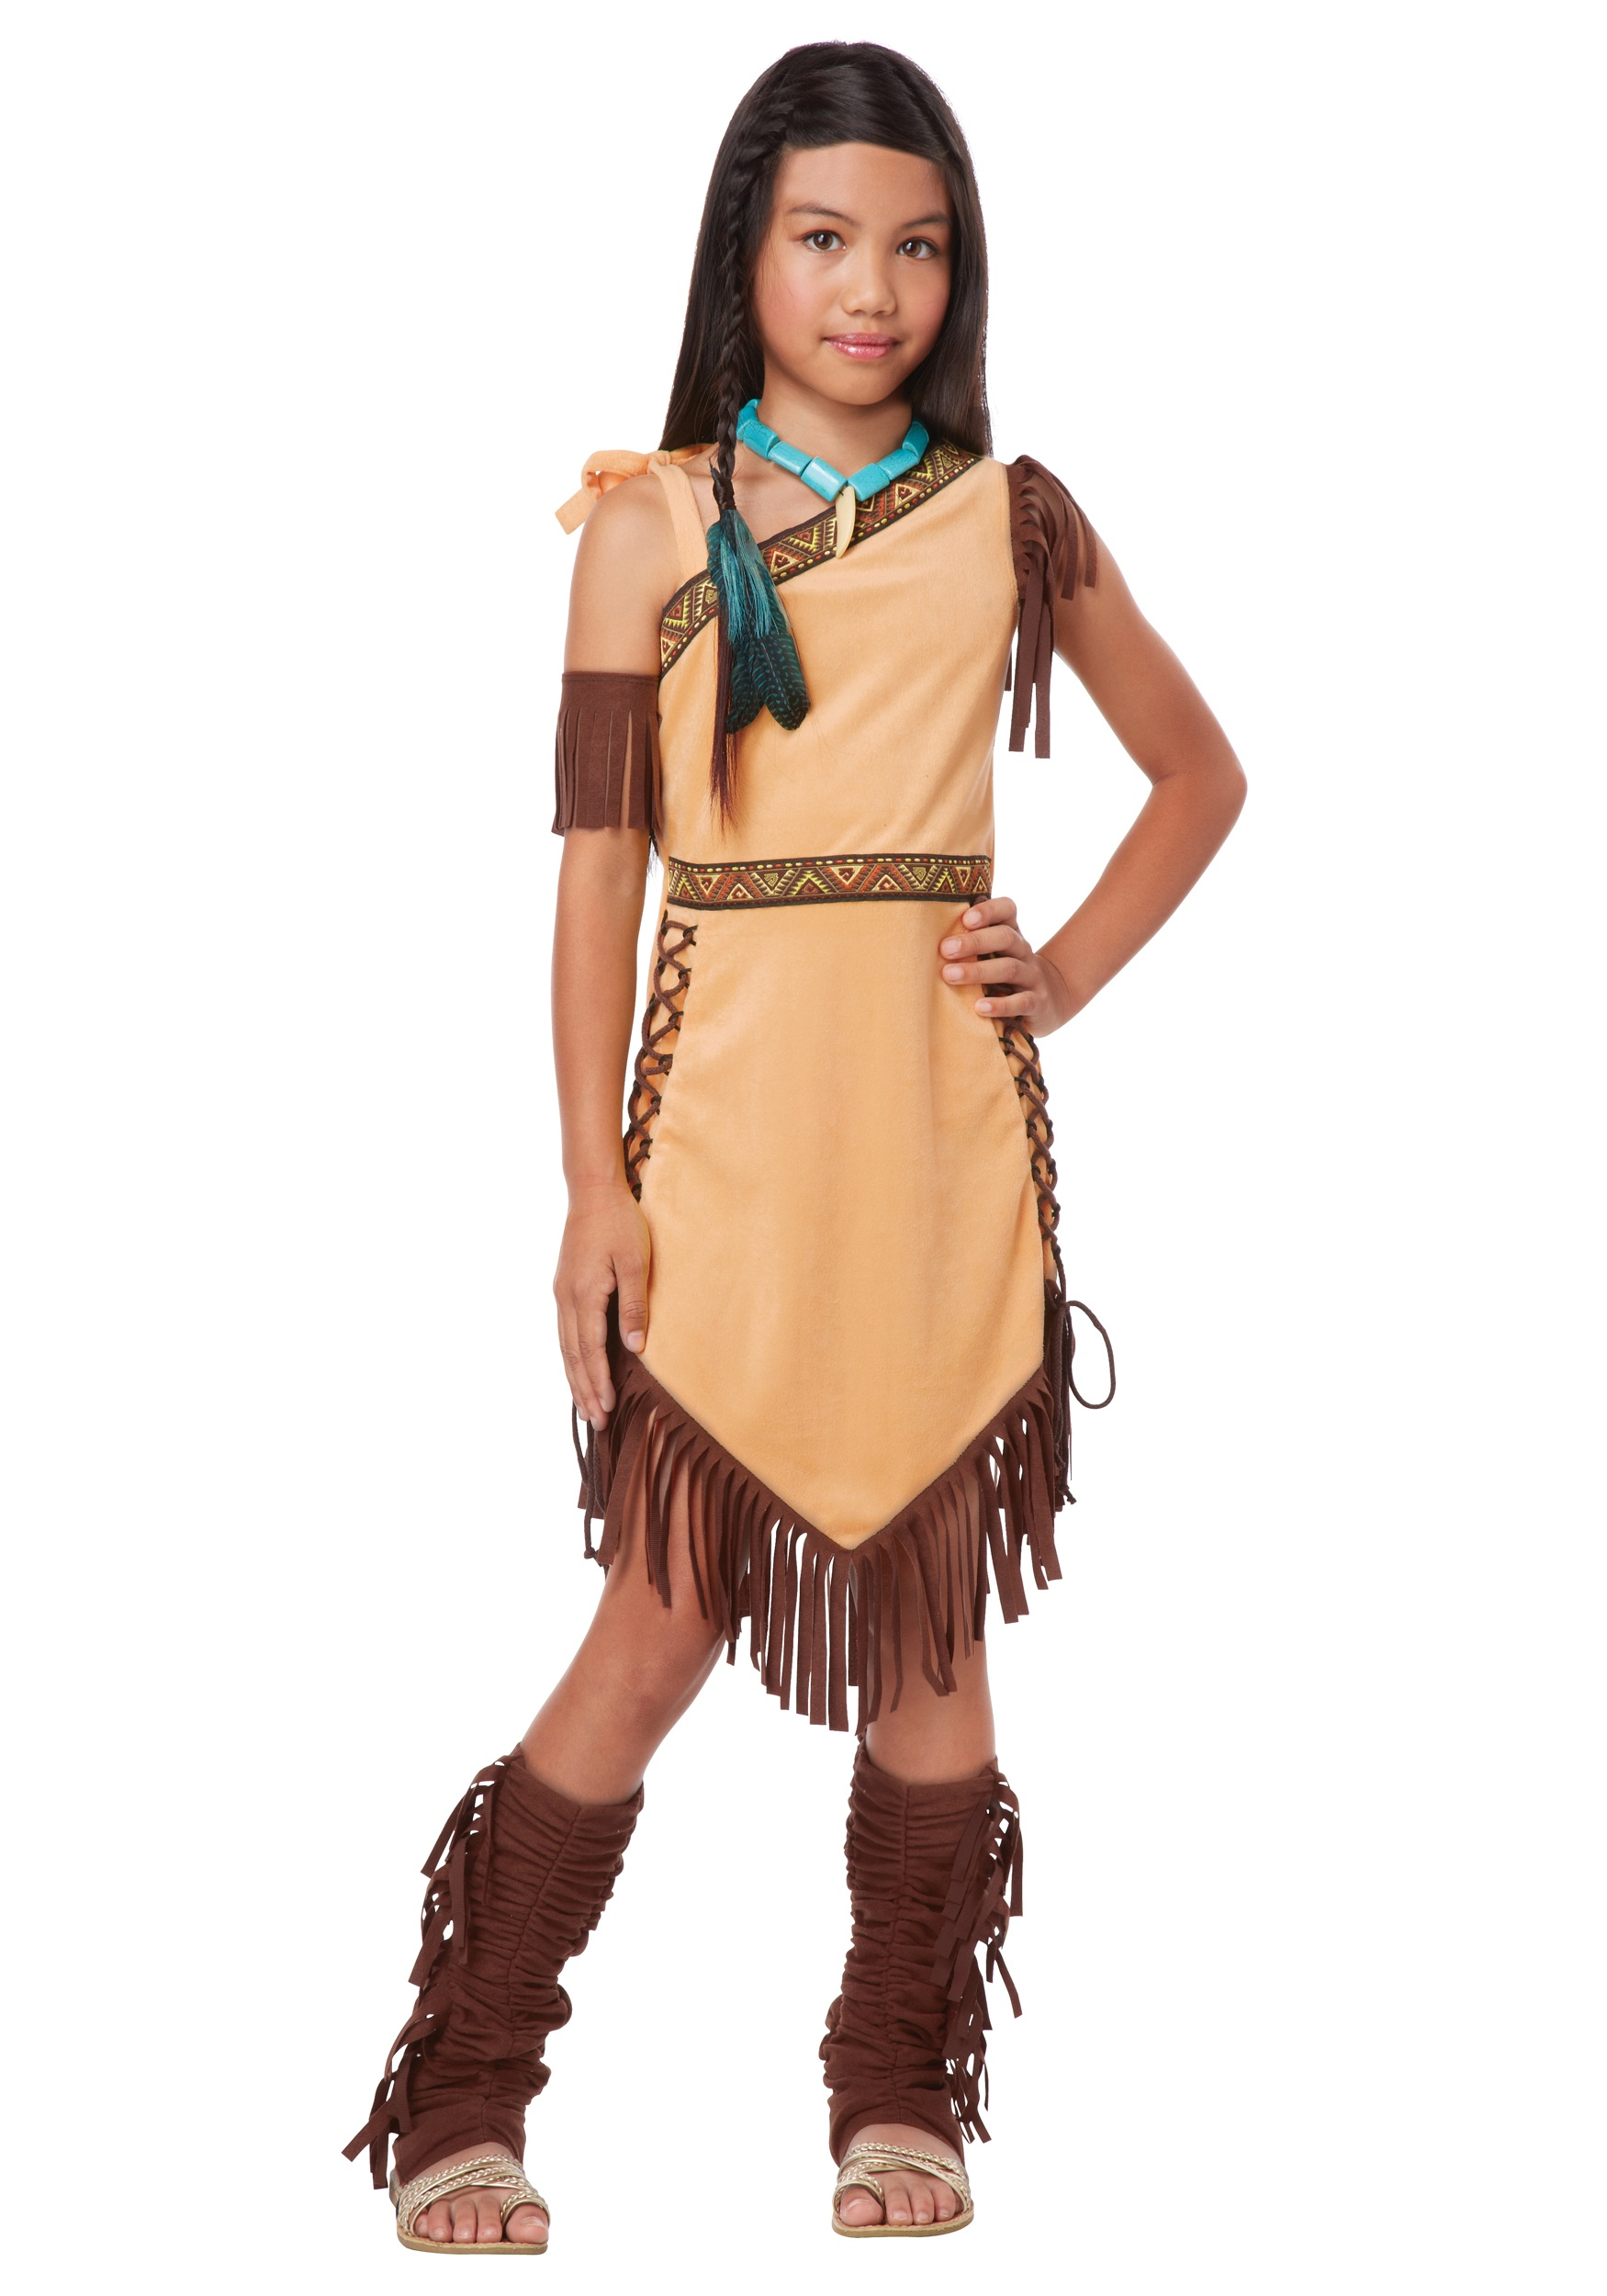 Toddler Girl Native American Costume Native American Princess Girl